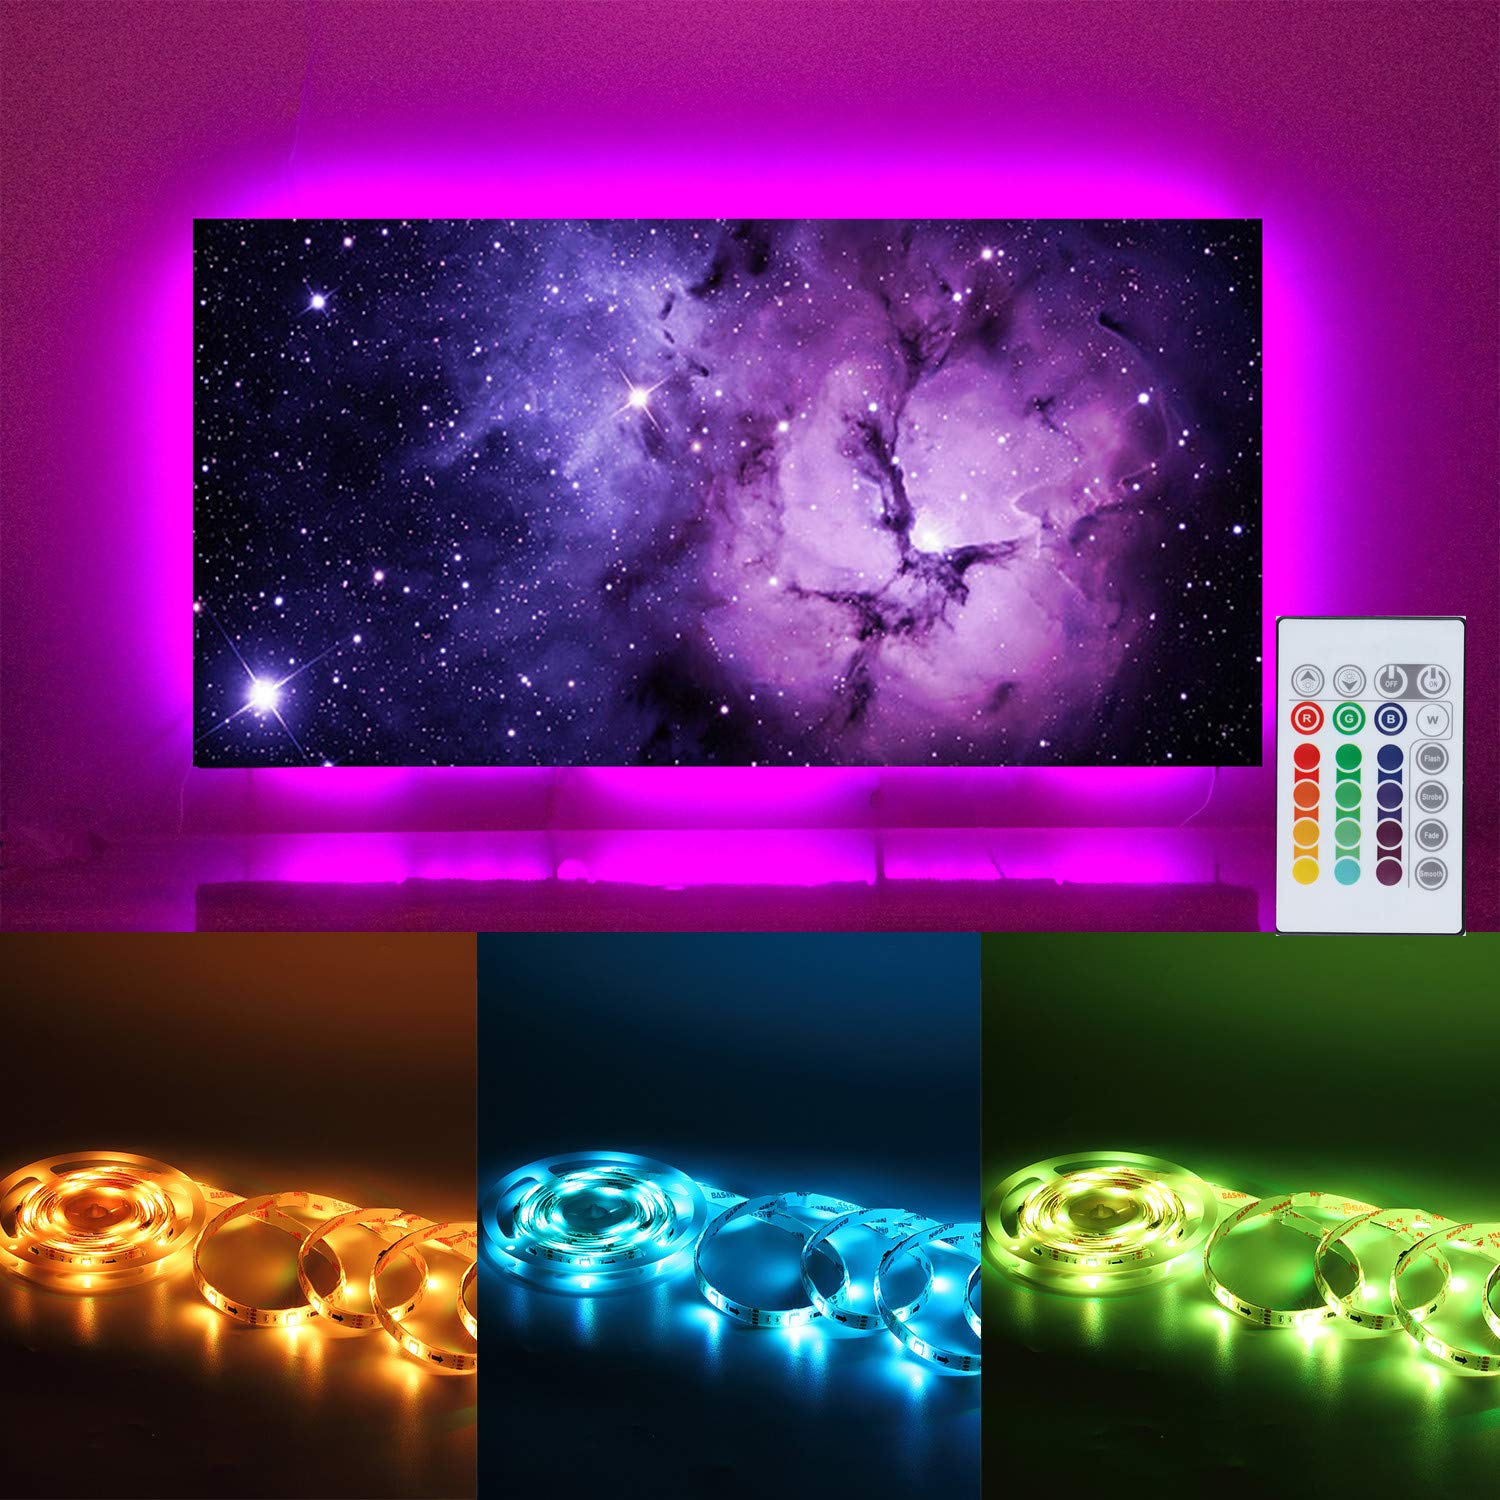 LED Strip Lights for 55 60 inches Back of TV Decor USB Operate 11.28ft Waterproof RGB Backlighting with 20 Colors Changing Remote (White 55'' 60'') by IDIFY (Image #1)